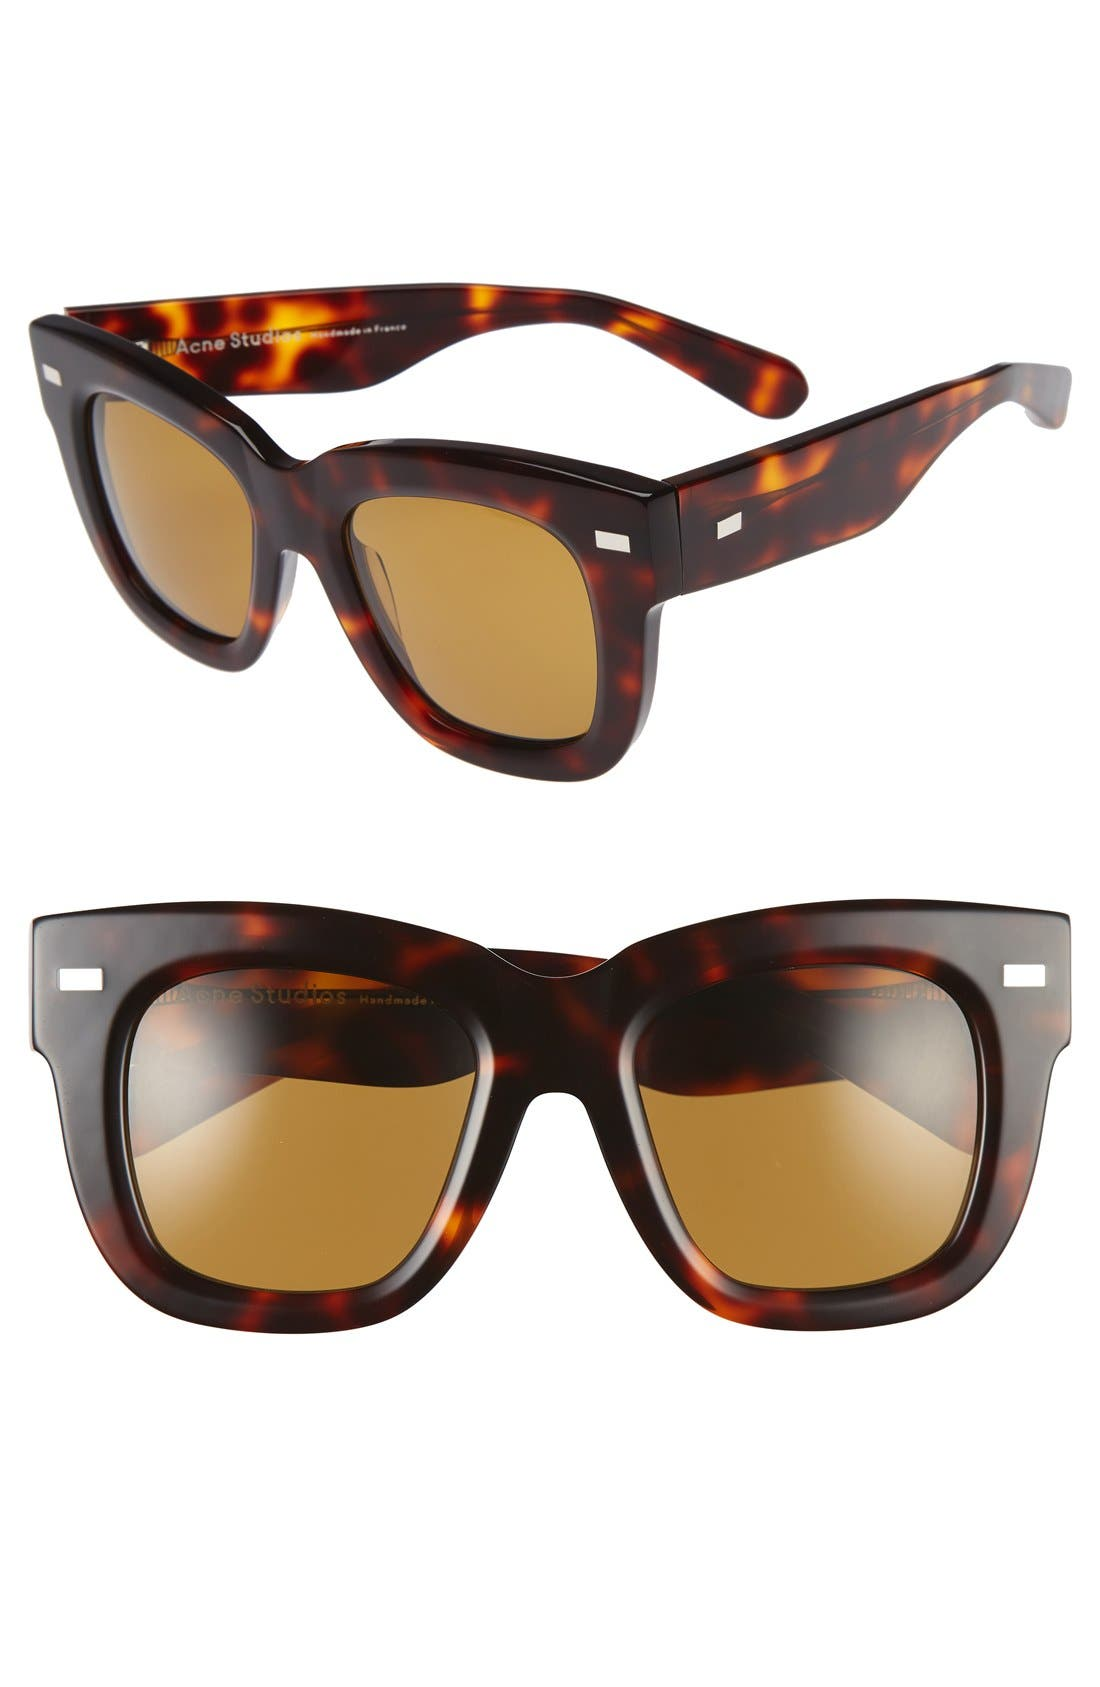 Library 51mm Sunglasses,                             Main thumbnail 1, color,                             Turtle